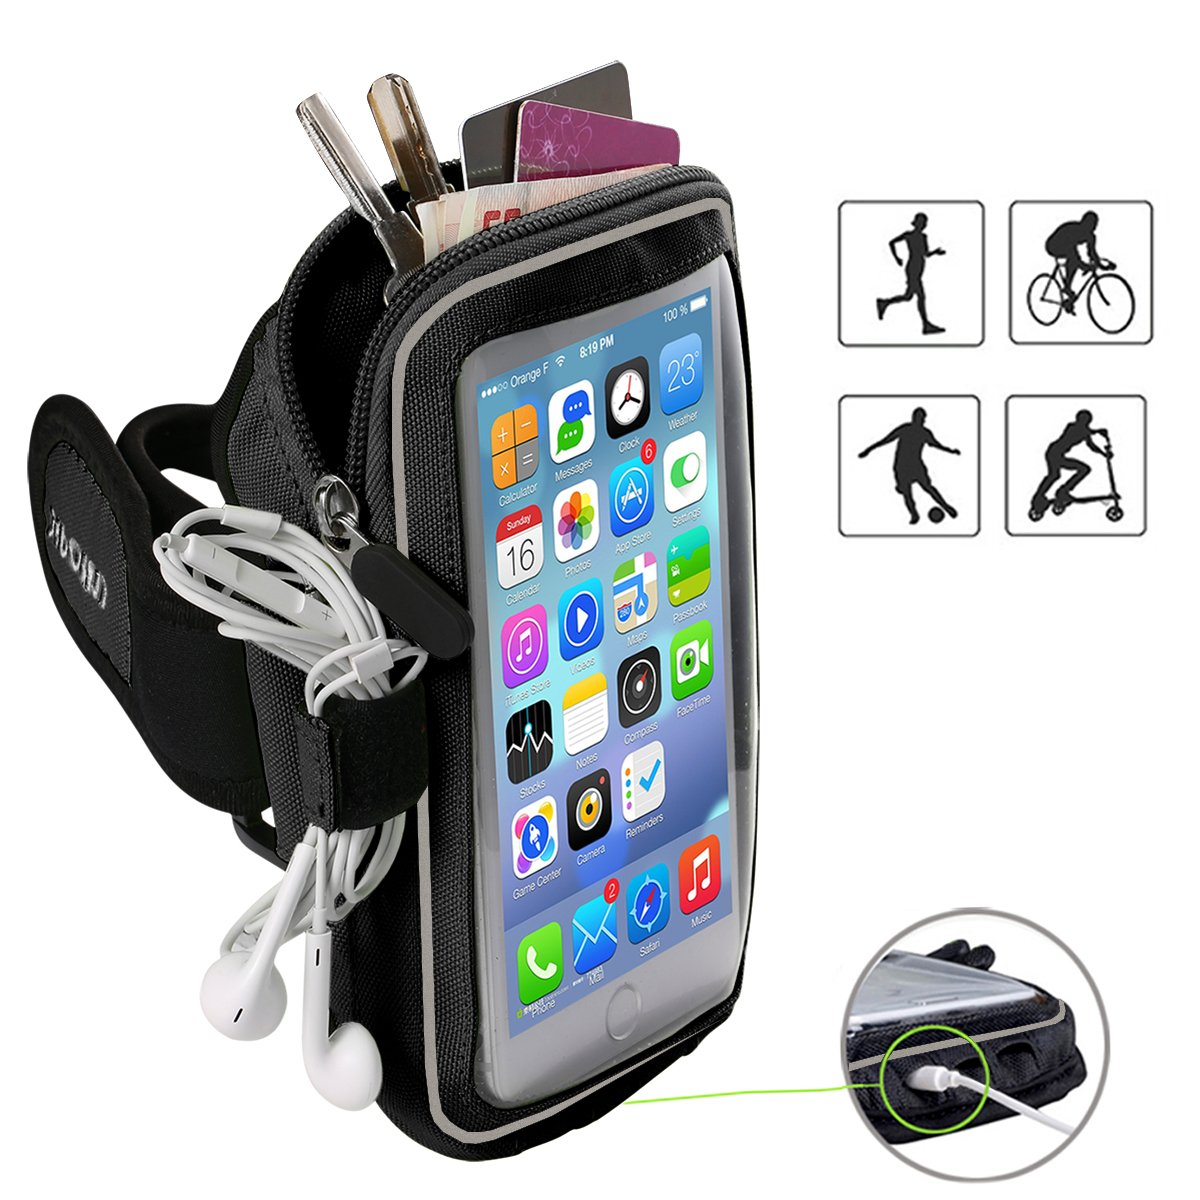 Xboun iPhone Armand, Outdoor Armband Sweatproof Gym Jogging Exercise Running Sports Armband Case with Key Holder & Pocket Pouch for iPhone 8 7 6 6s 5s 5c SE - Fits for Men and Women